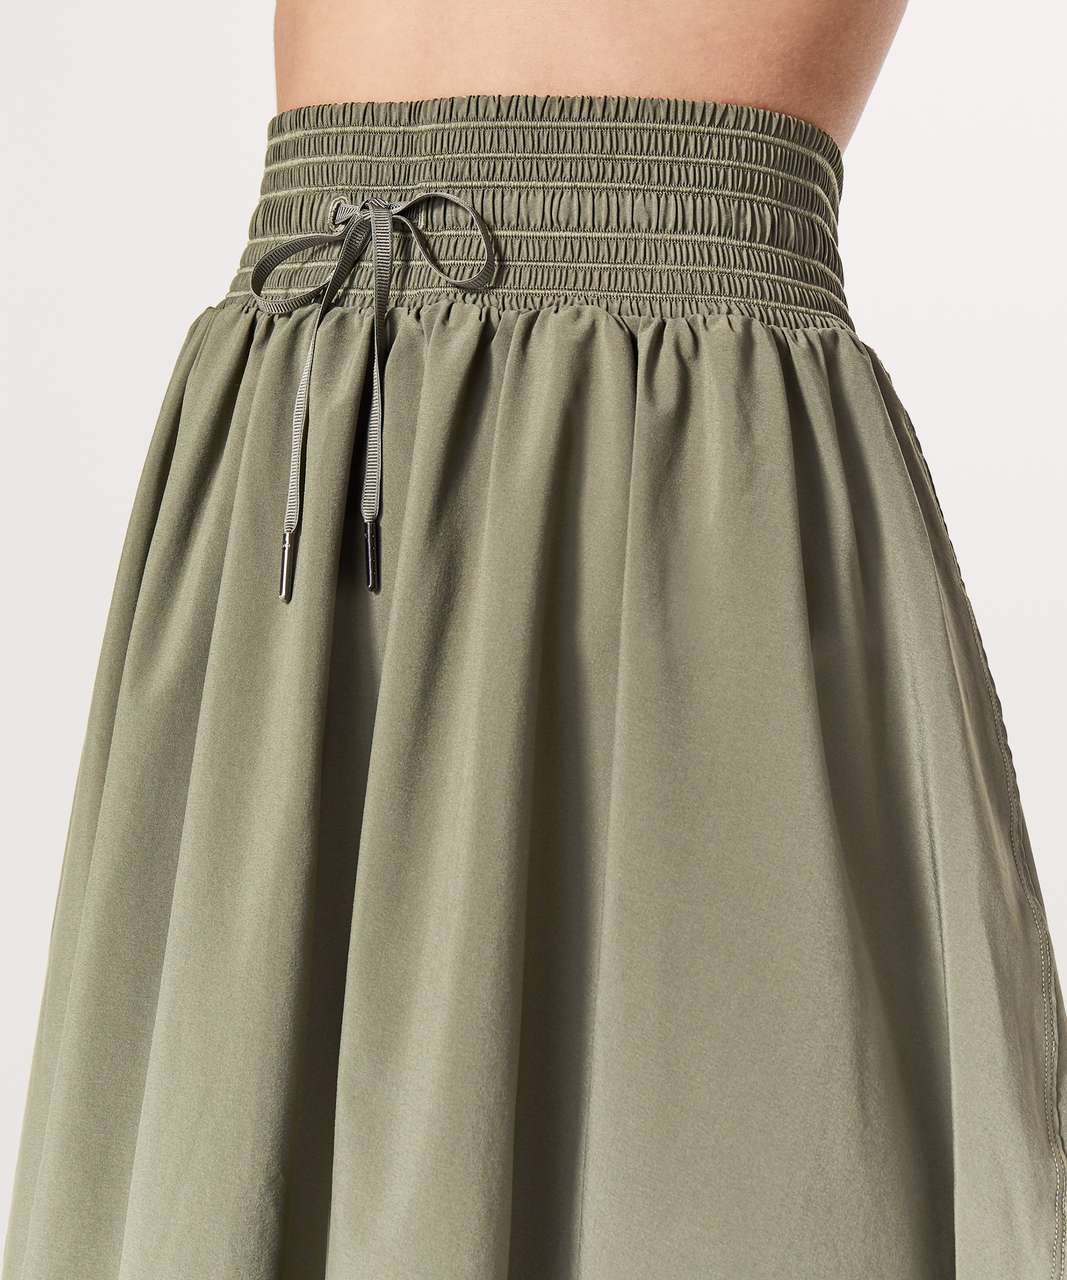 Lululemon The Everyday Skirt - Sage